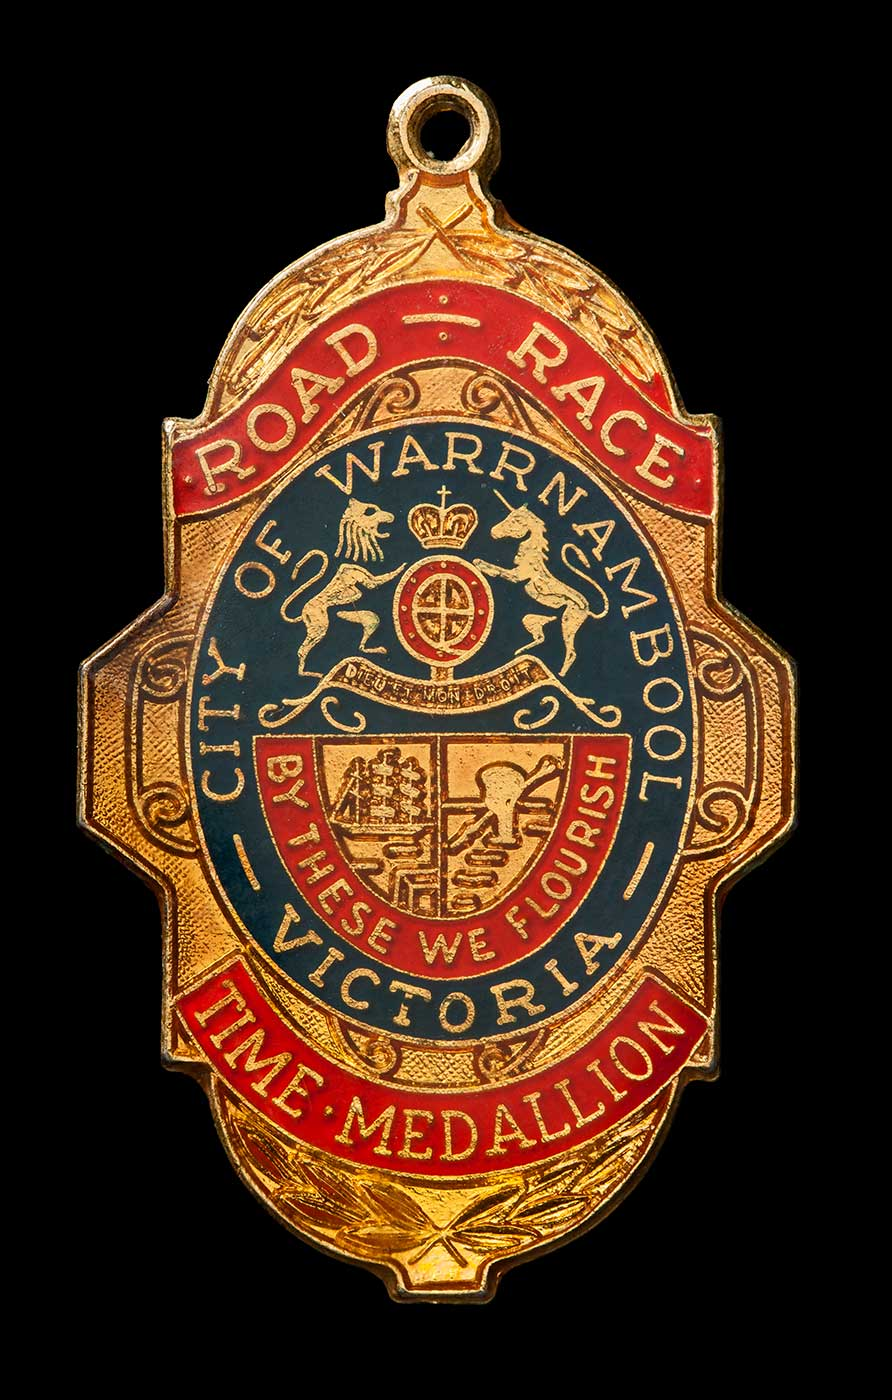 A gold coloured irregular shaped medallion. The front side has blue and red enamelled sections and is inscribed 'ROAD - RACE/CITY OF WARRNAMBOOL / BY THESE WE FLOURISH / VICTORIA / TIME MEDALLION'. - click to view larger image